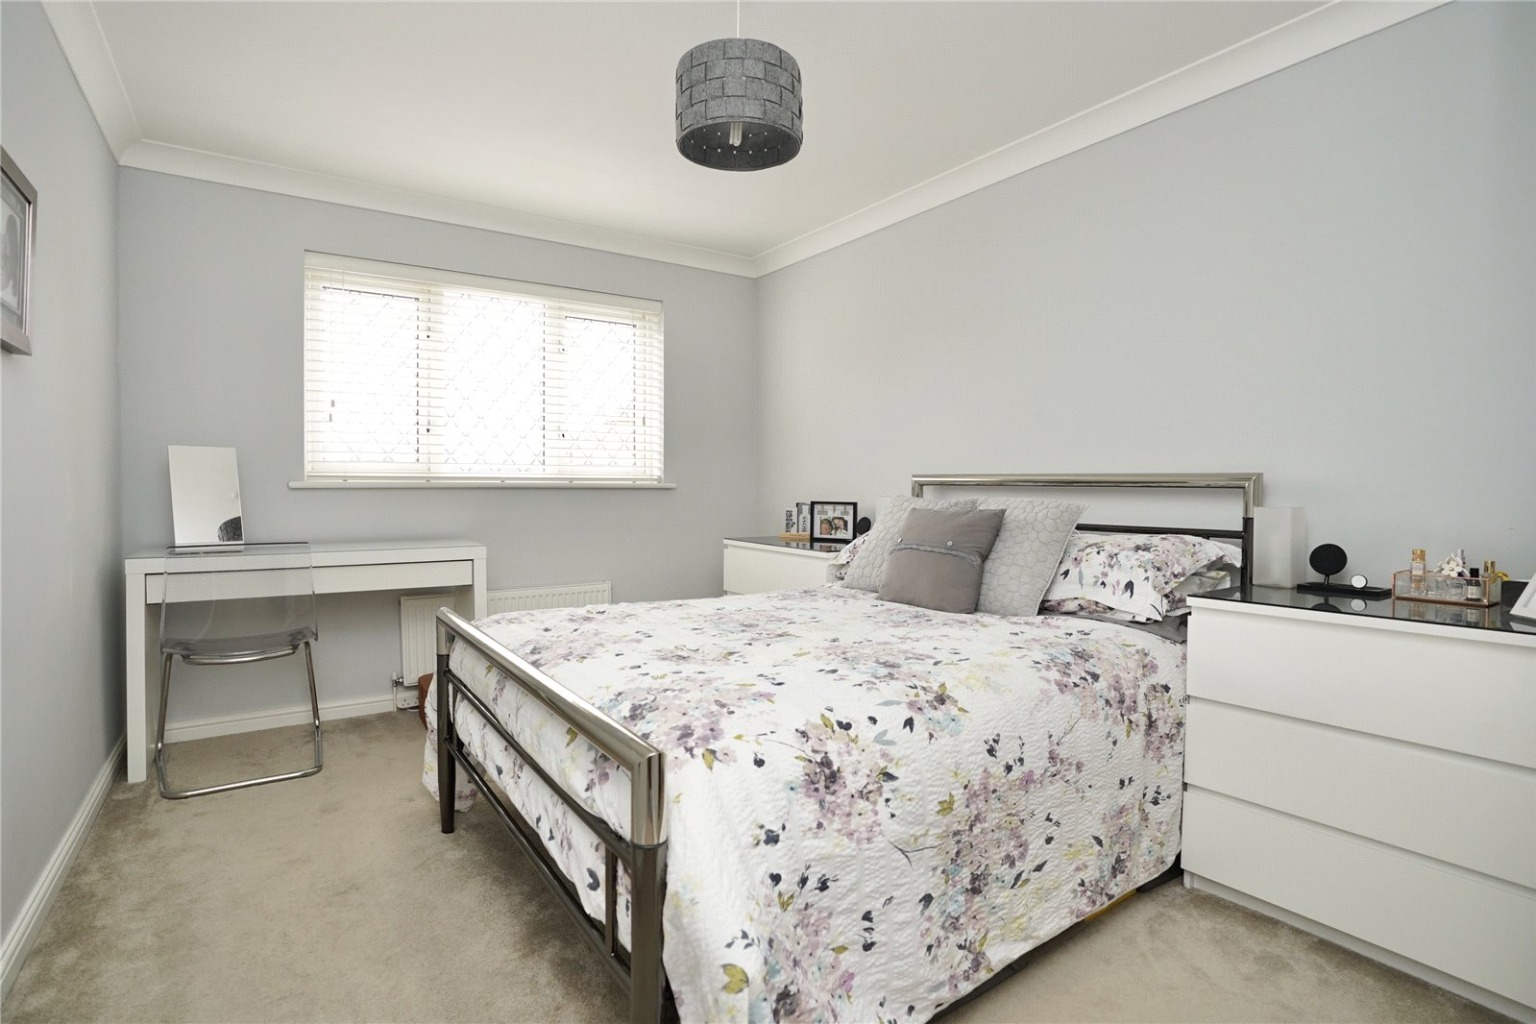 3 bed detached house for sale in Chamberlain Way, St. Neots  - Property Image 7